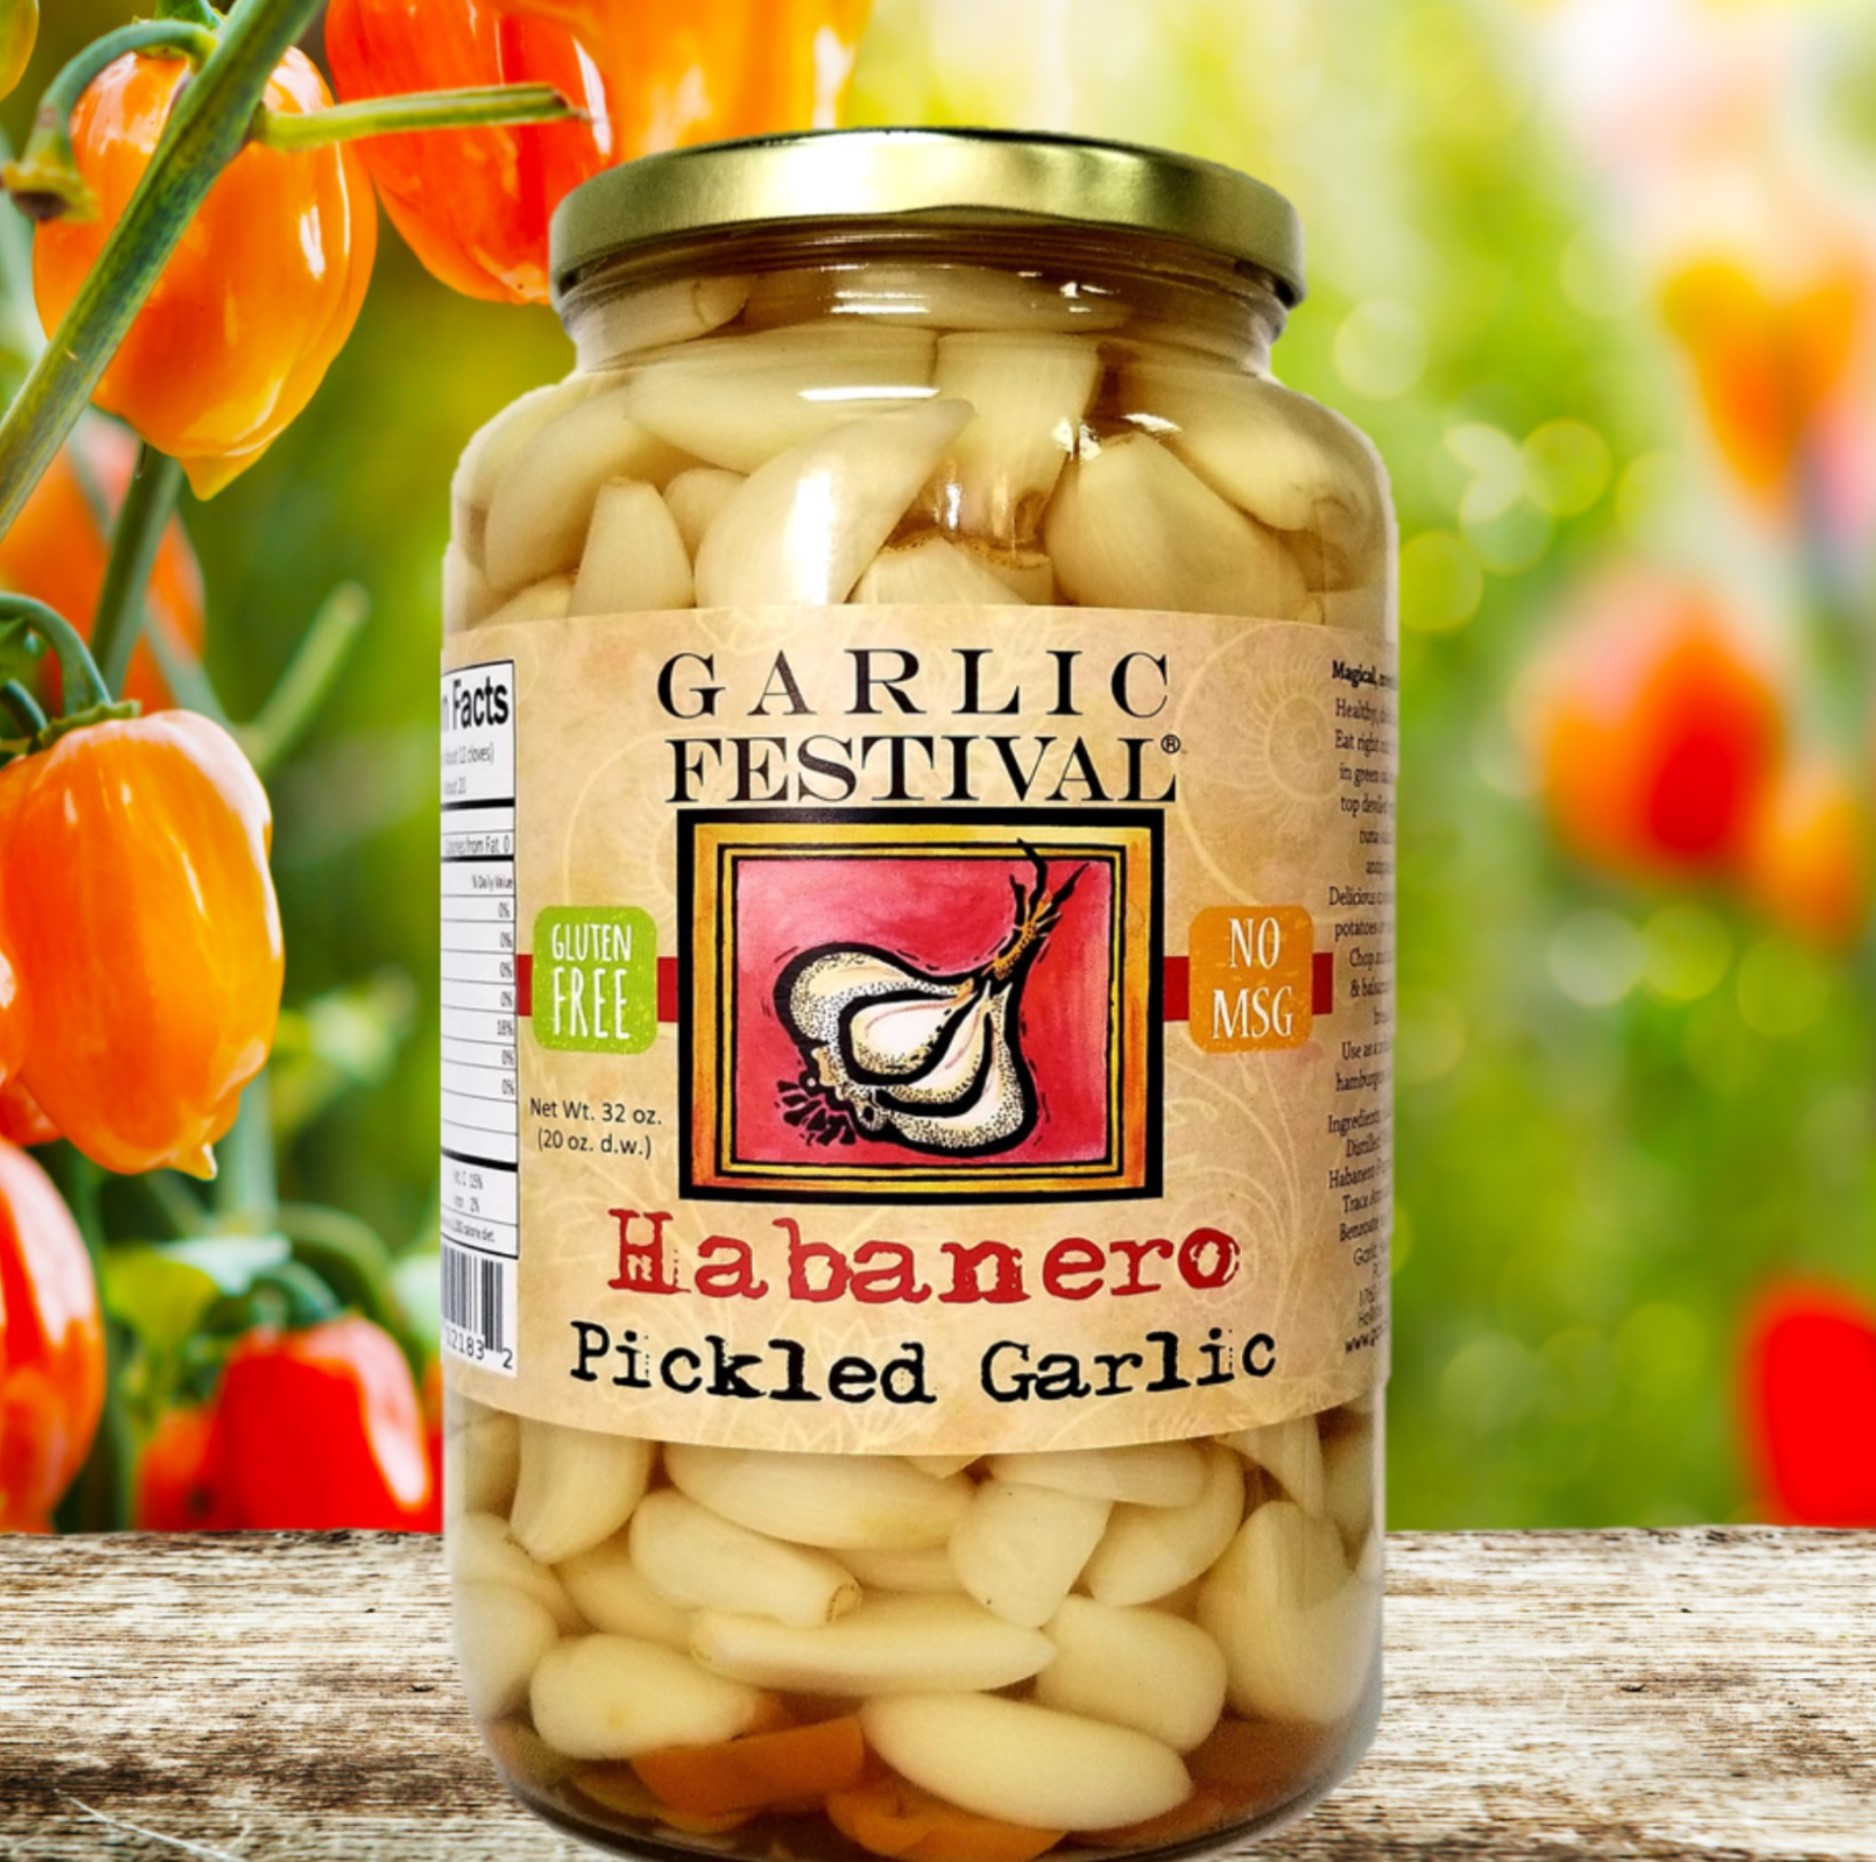 I bought pickled garlic at the store once. I want to do it myself. Who knows the recipe 2